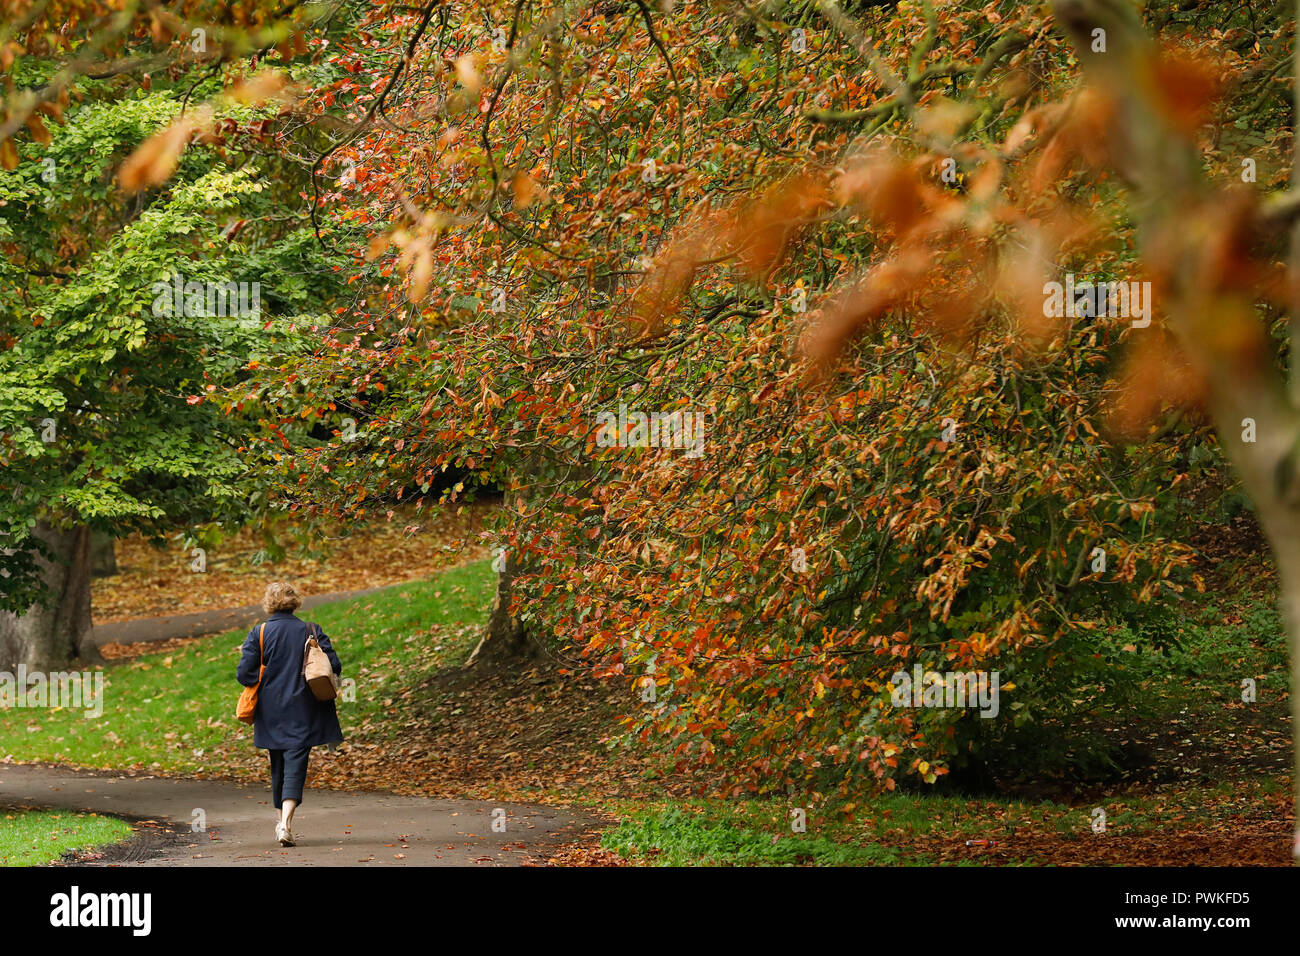 Battersea Park, London. 17th Oct 2018. UK Weather: A woman walks among the colourful autumn leaves in Battersea Park in London, Wednesday October 17, 2018. Photograph : © Luke MacGregor Credit: Luke MacGregor/Alamy Live News Stock Photo